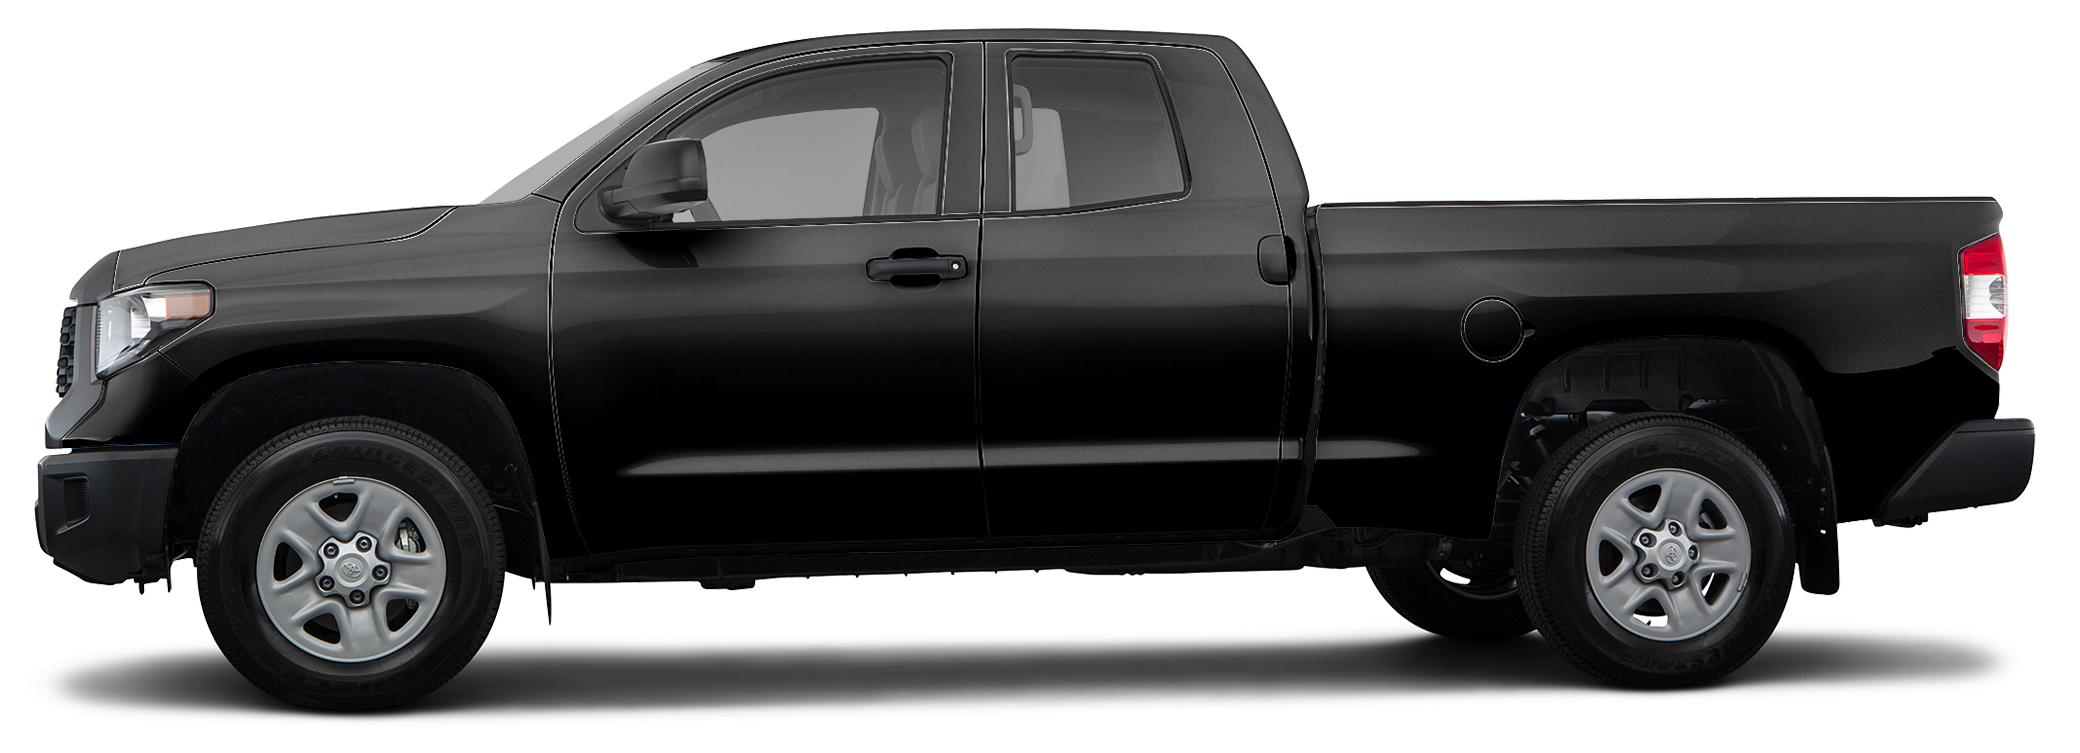 2019 Toyota Tundra Truck SR 4.6L V8